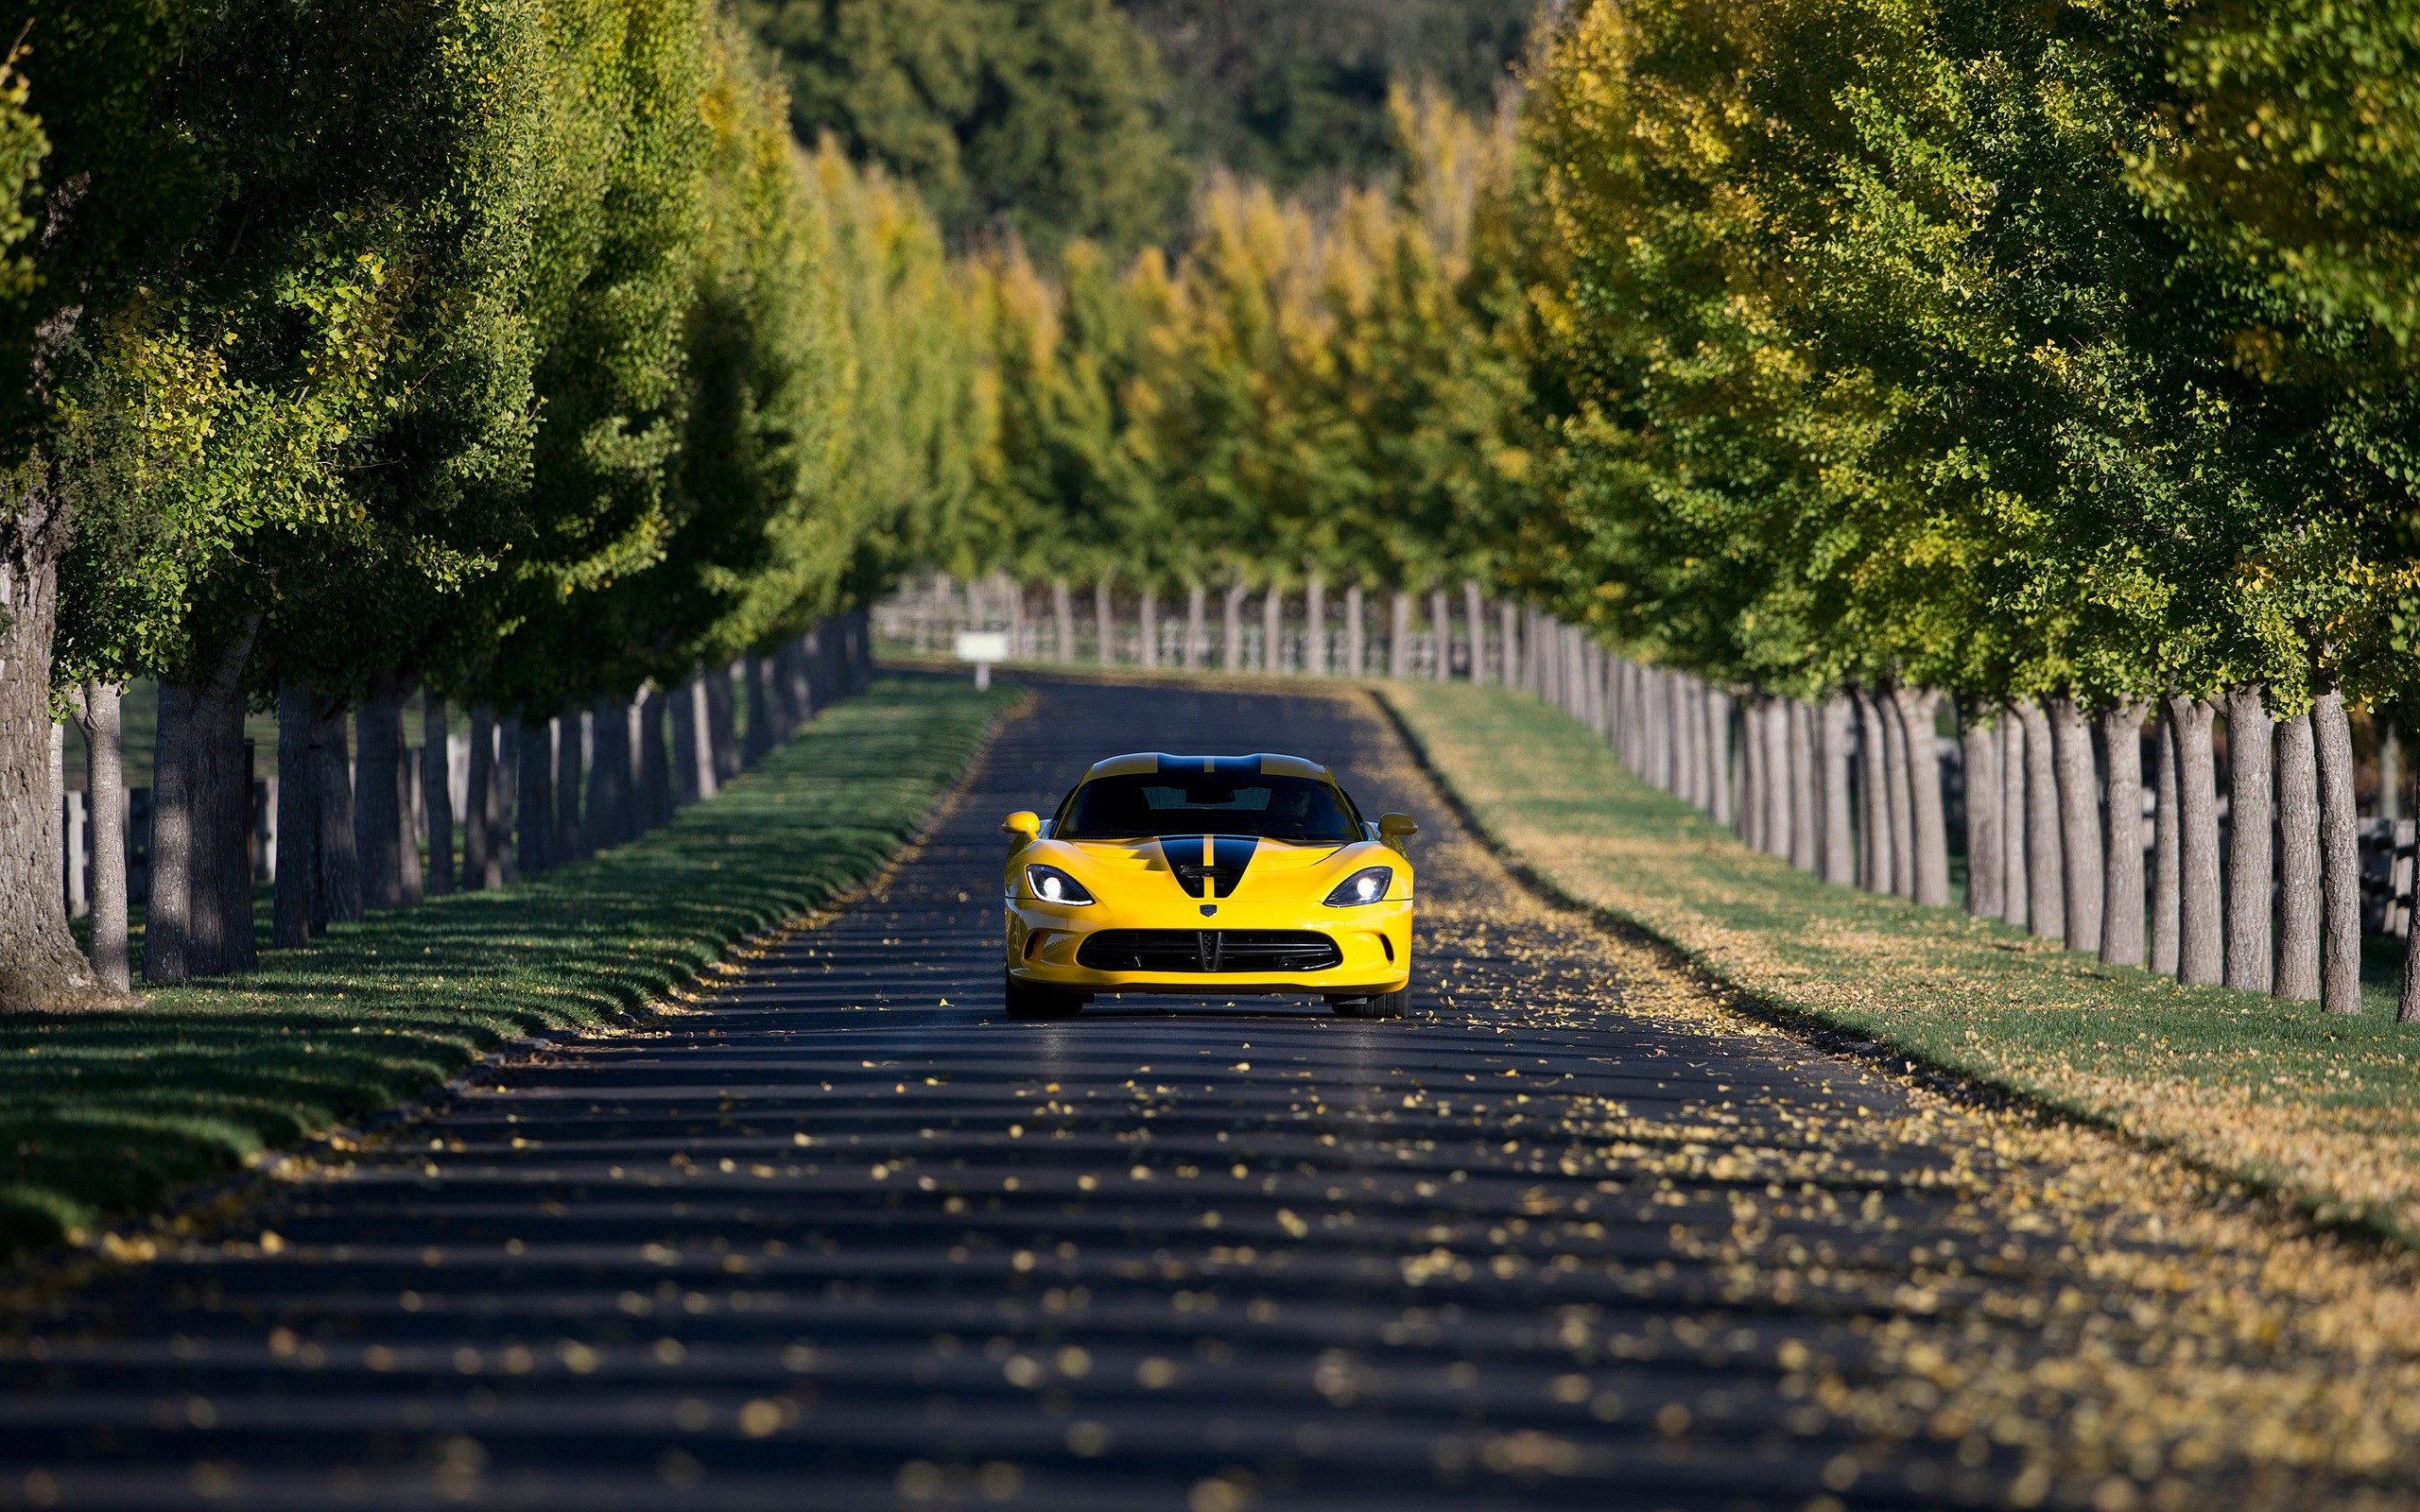 Vintage Car Hd Wallpapers For Pc Dodge Viper Car Yellow Cars Road Trees Depth Of Field